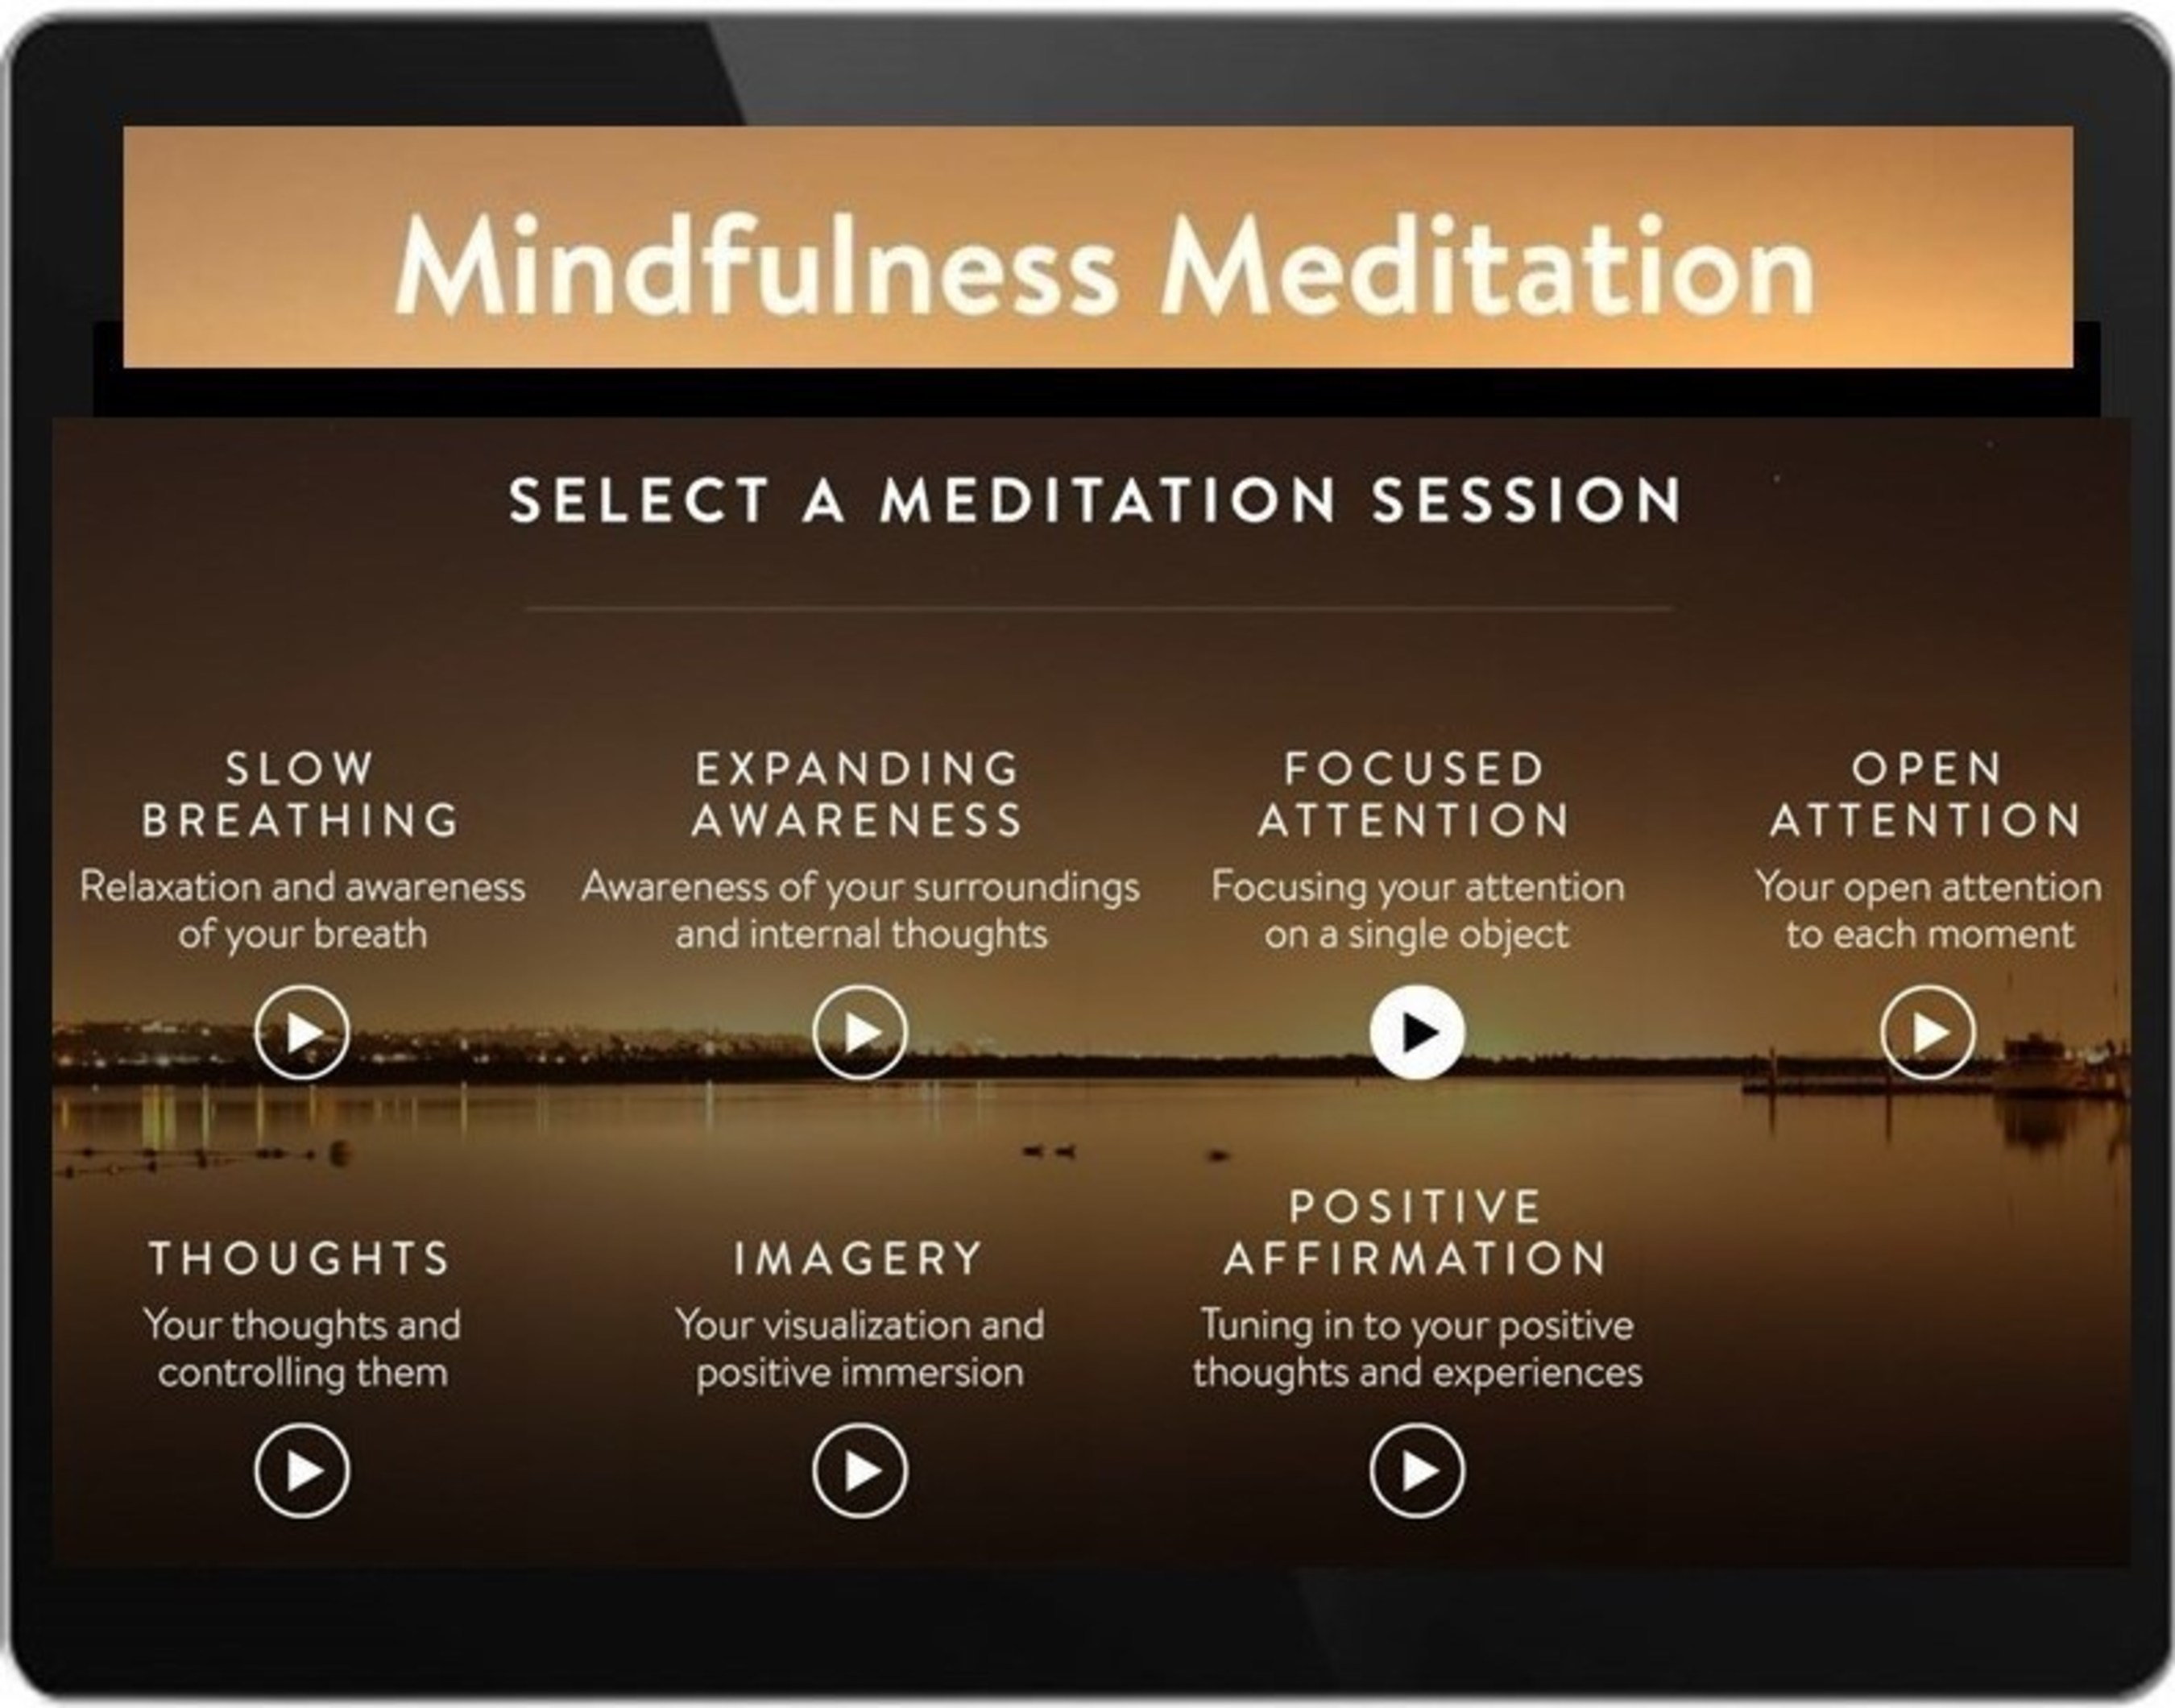 Mindfulness Meditation App by MyBrainSolutions - integrate your brain, integrate your life. Available on iOS and Android.